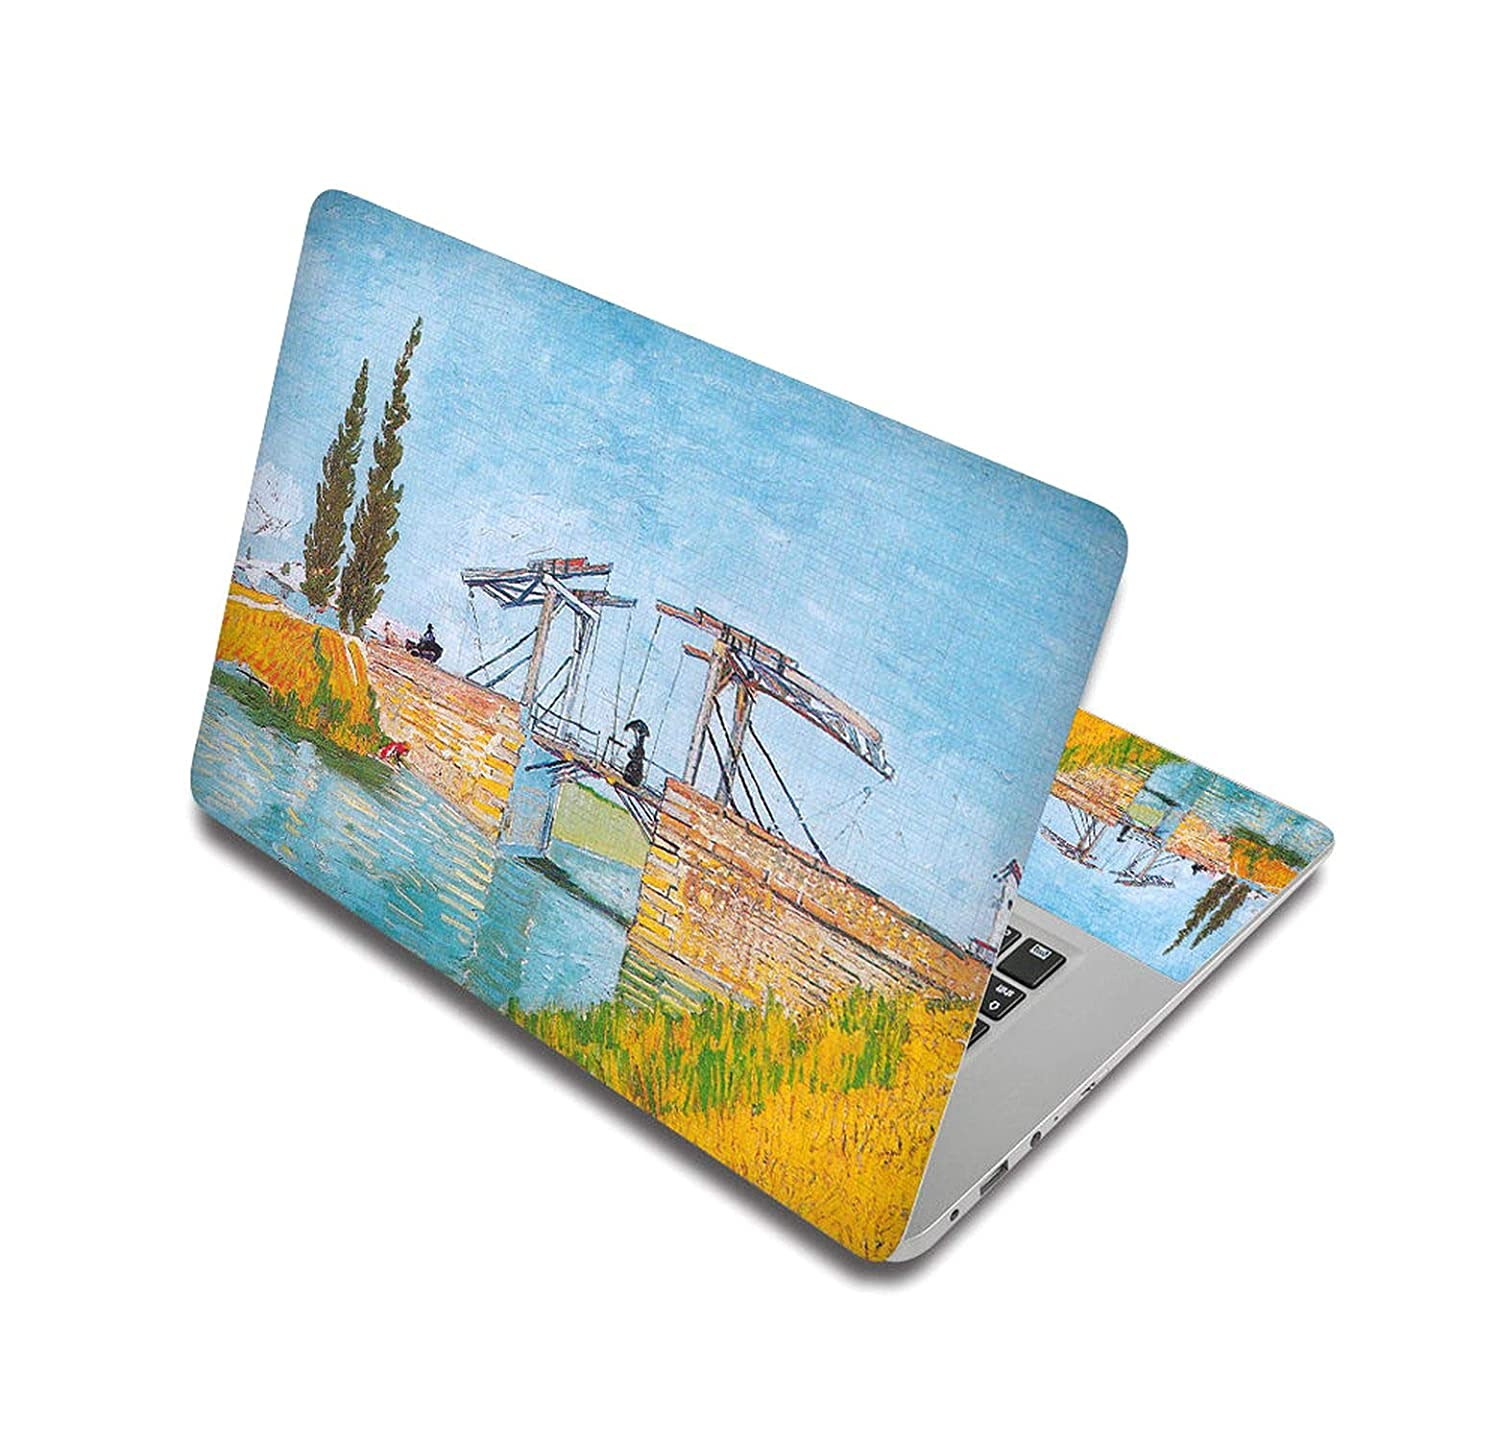 Oil Painting Style Stickers For Laptop Skin Notebook Decal Computer Sticker For Lenovo/Hp/Asus/Mac Air,15 Inch(38x27cm),Laptop Skin 4